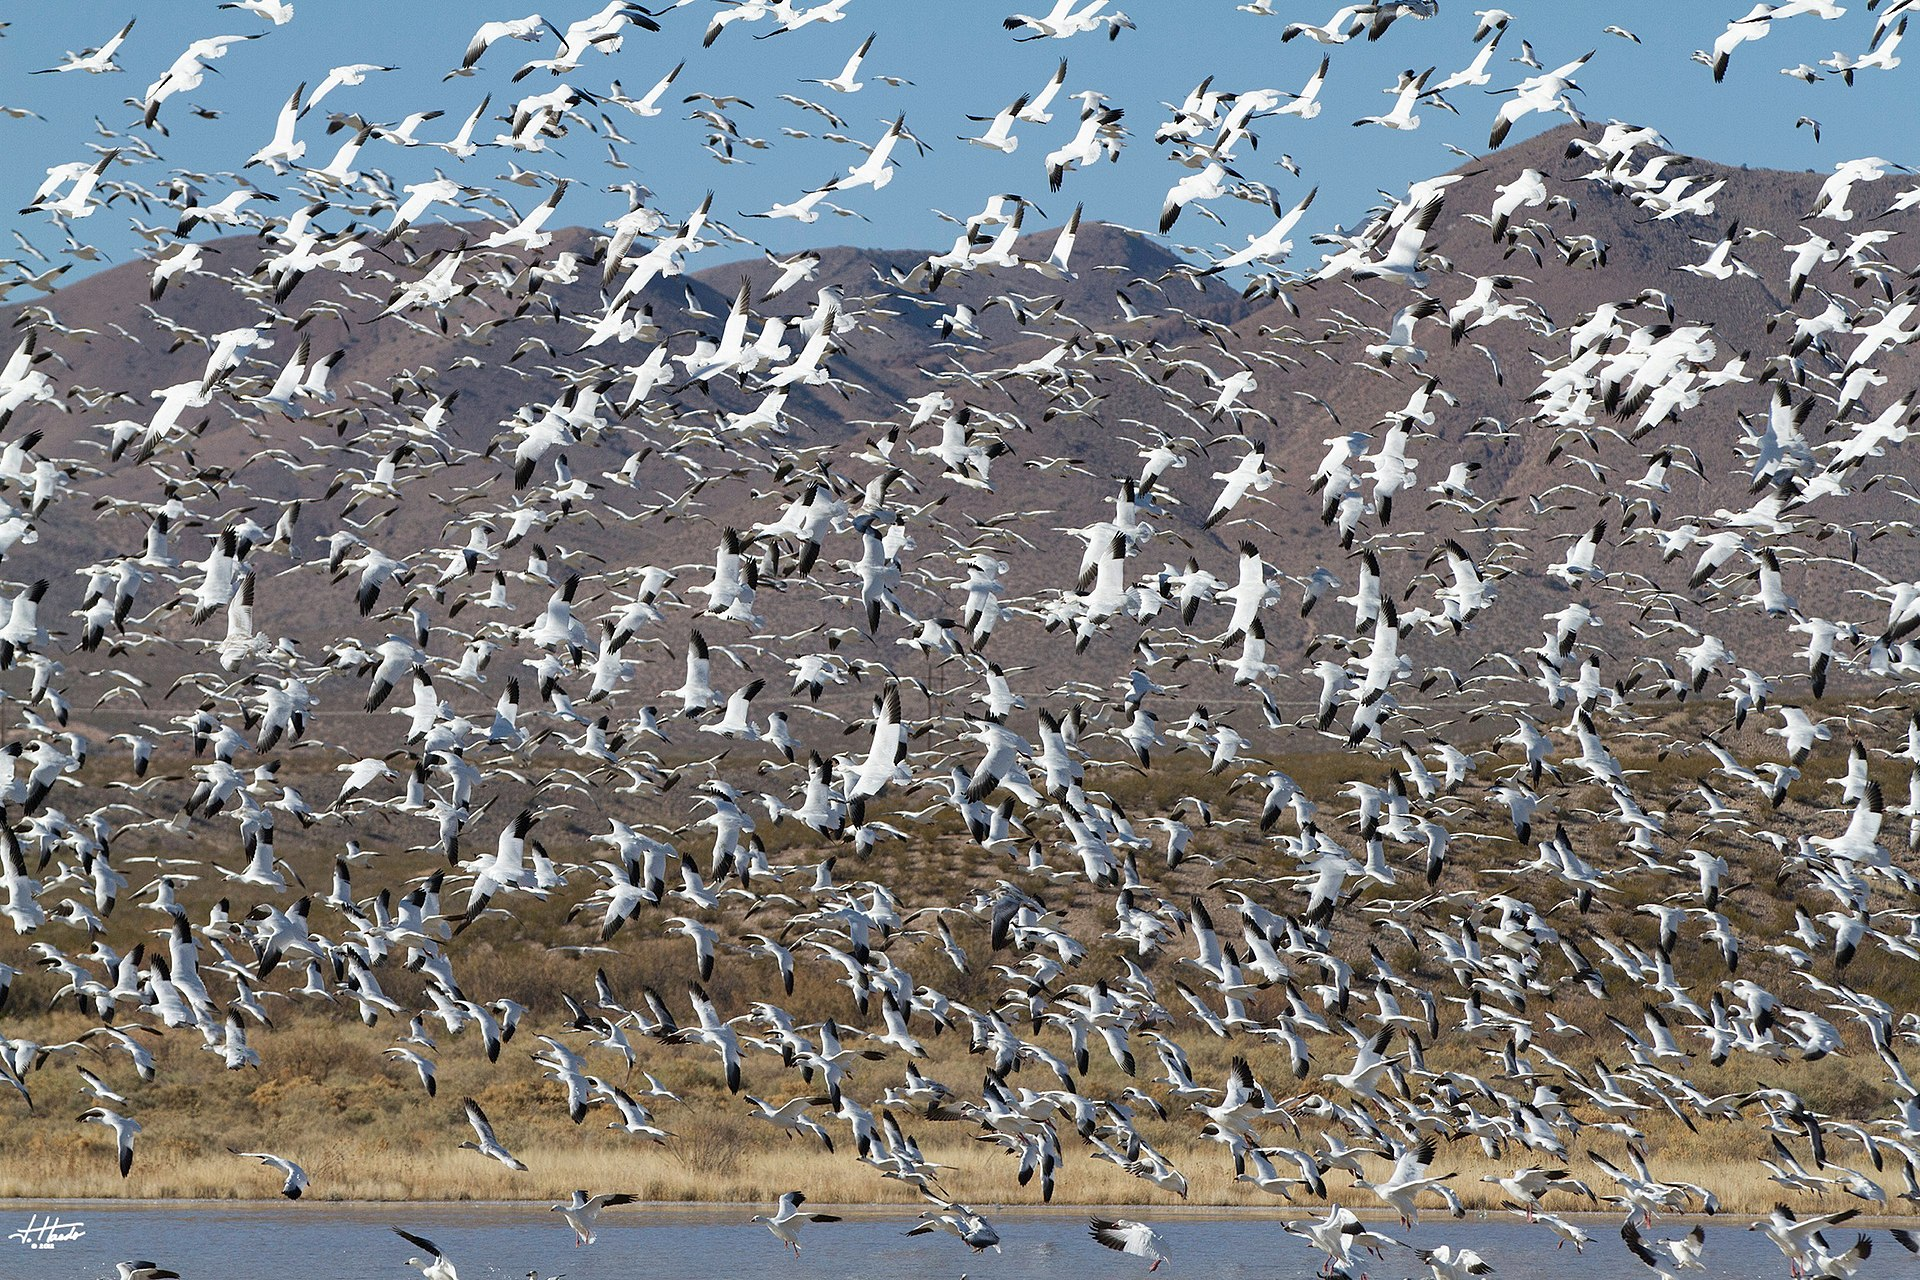 Snow Geese at Bosque del Apache. Photo by John581 / Wikimedia.